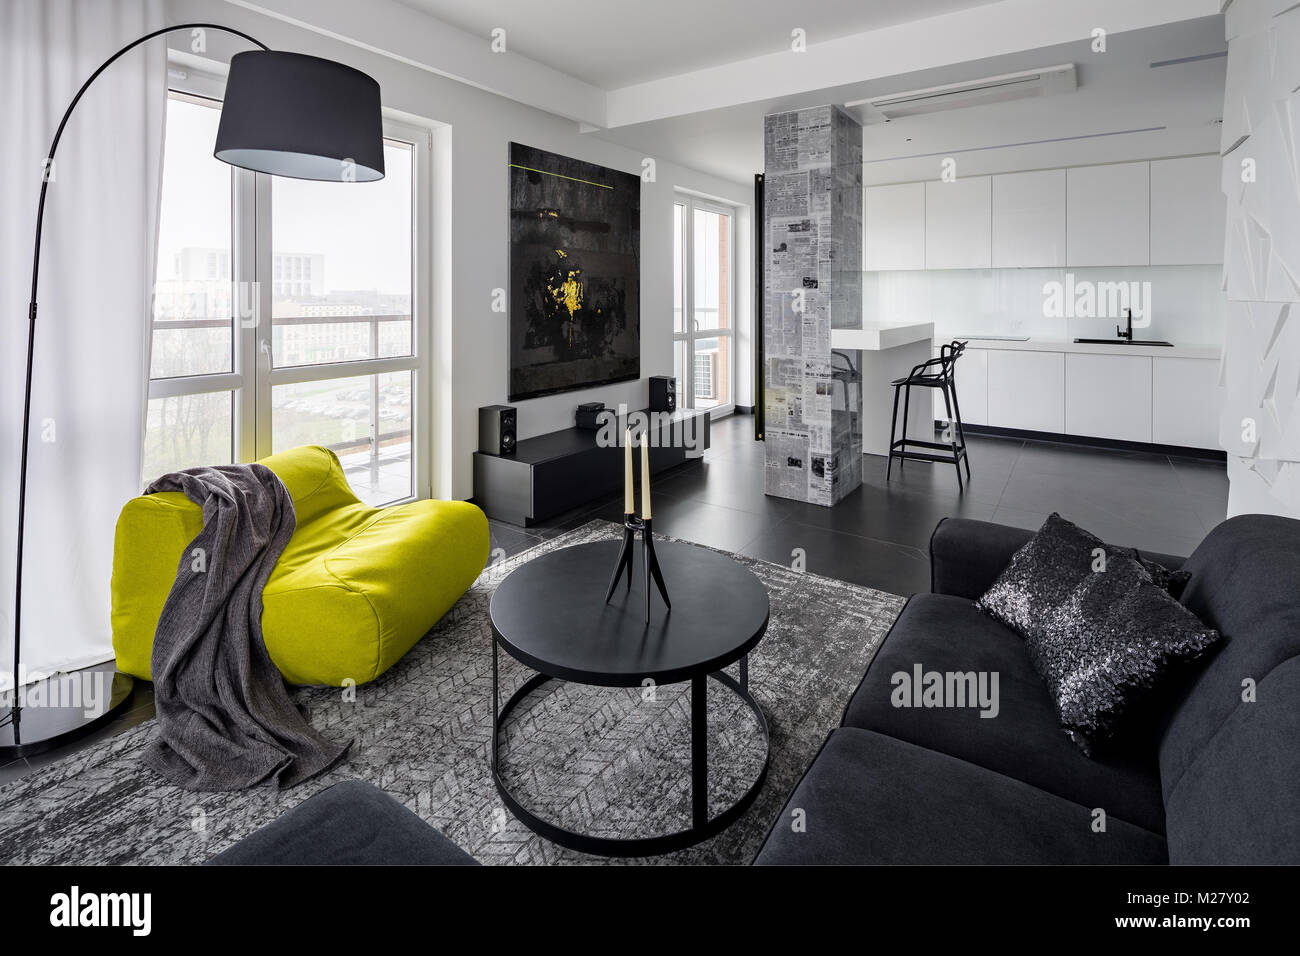 Black and white modern living room with green sack chair Stock Photo